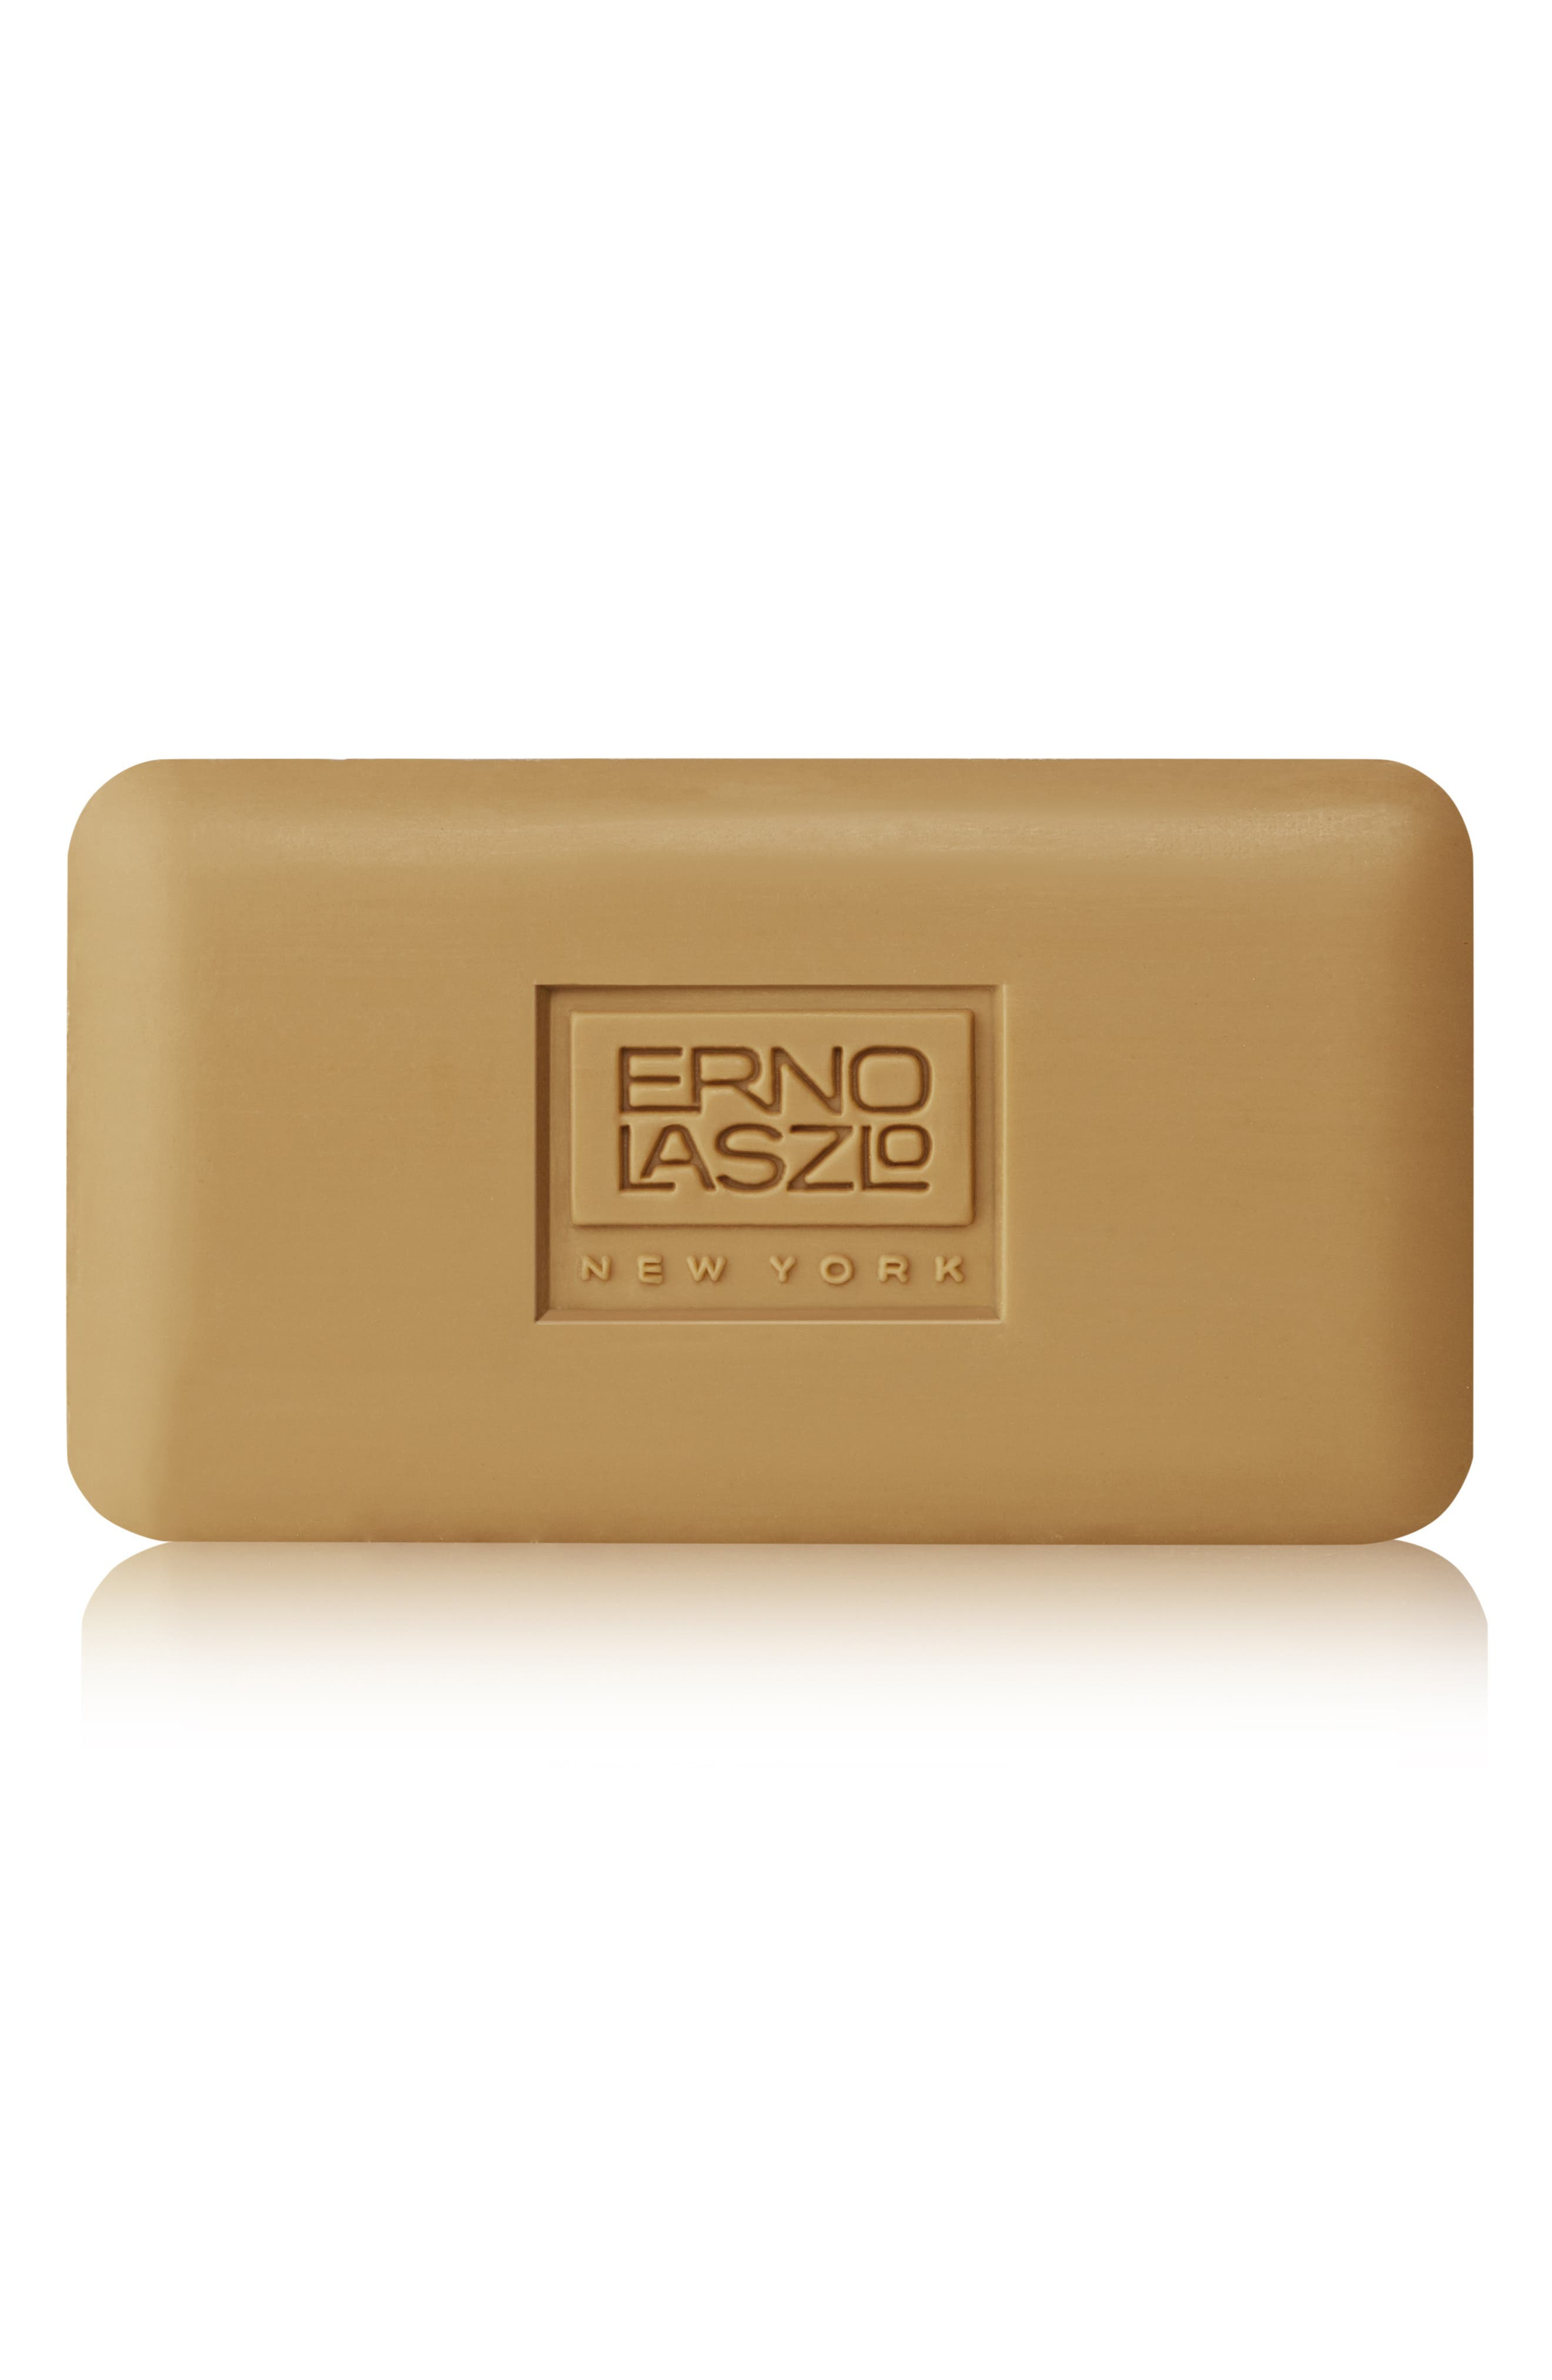 Erno Laszlo Phelityl Cleansing Bar in No Color at Nordstrom